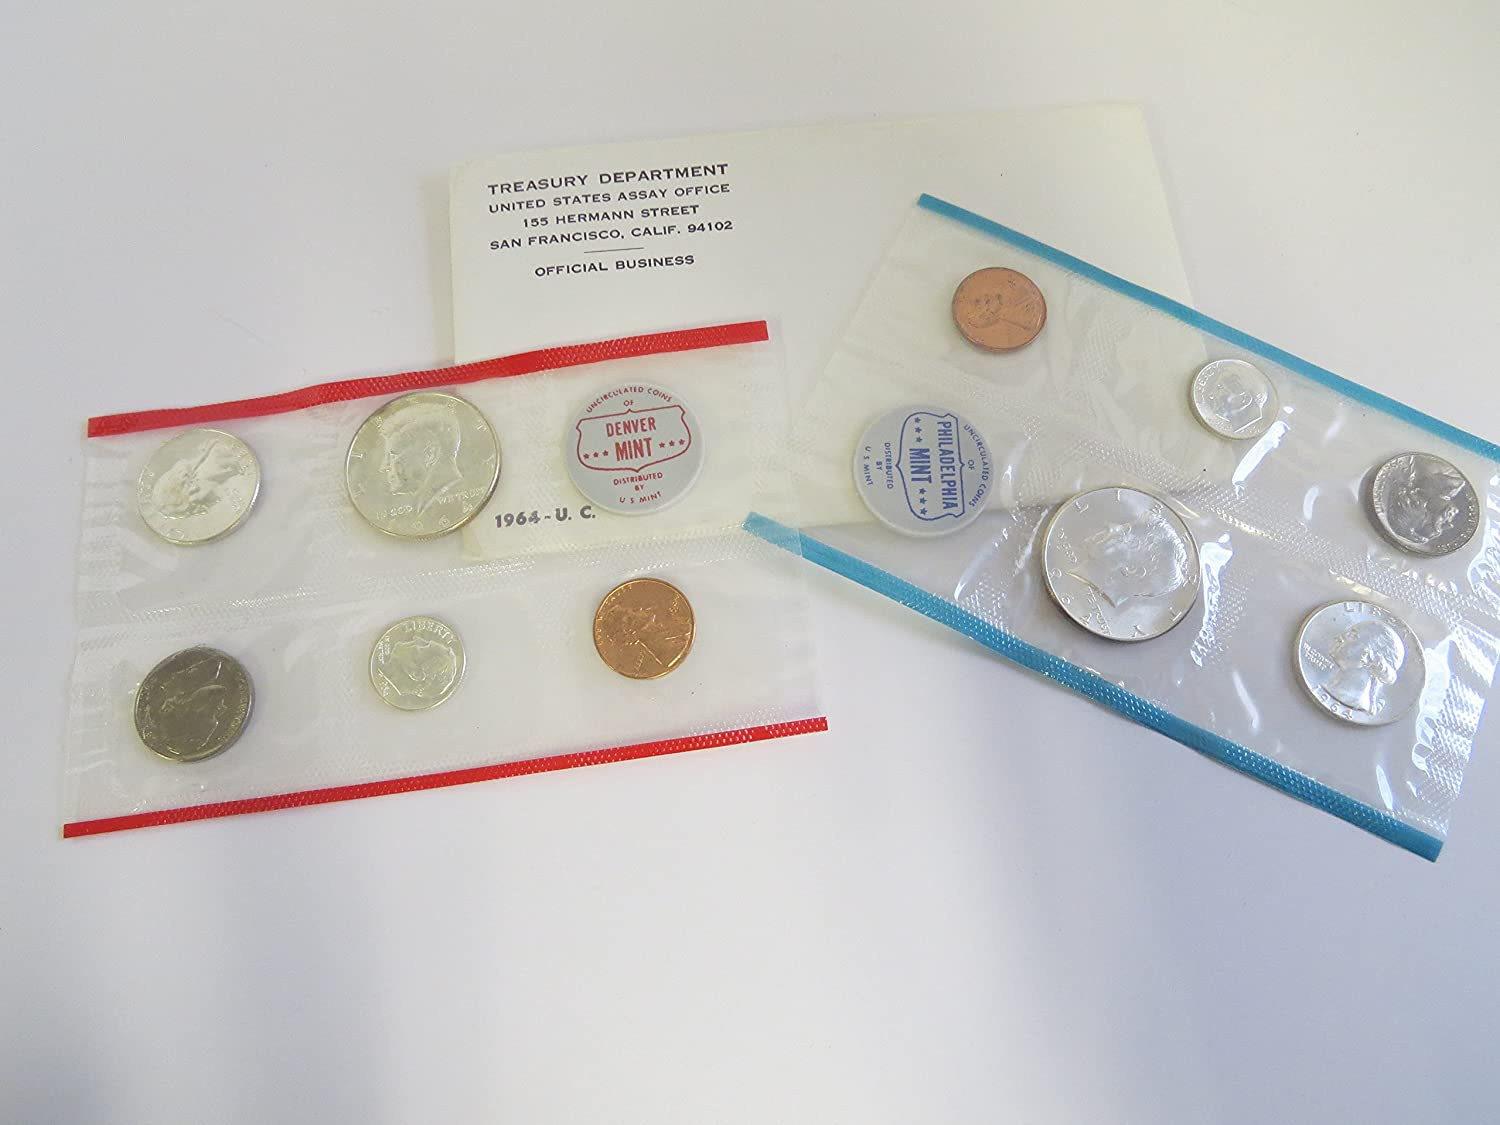 1964 Various Mint Marks Mint Set Perfect Uncirculated